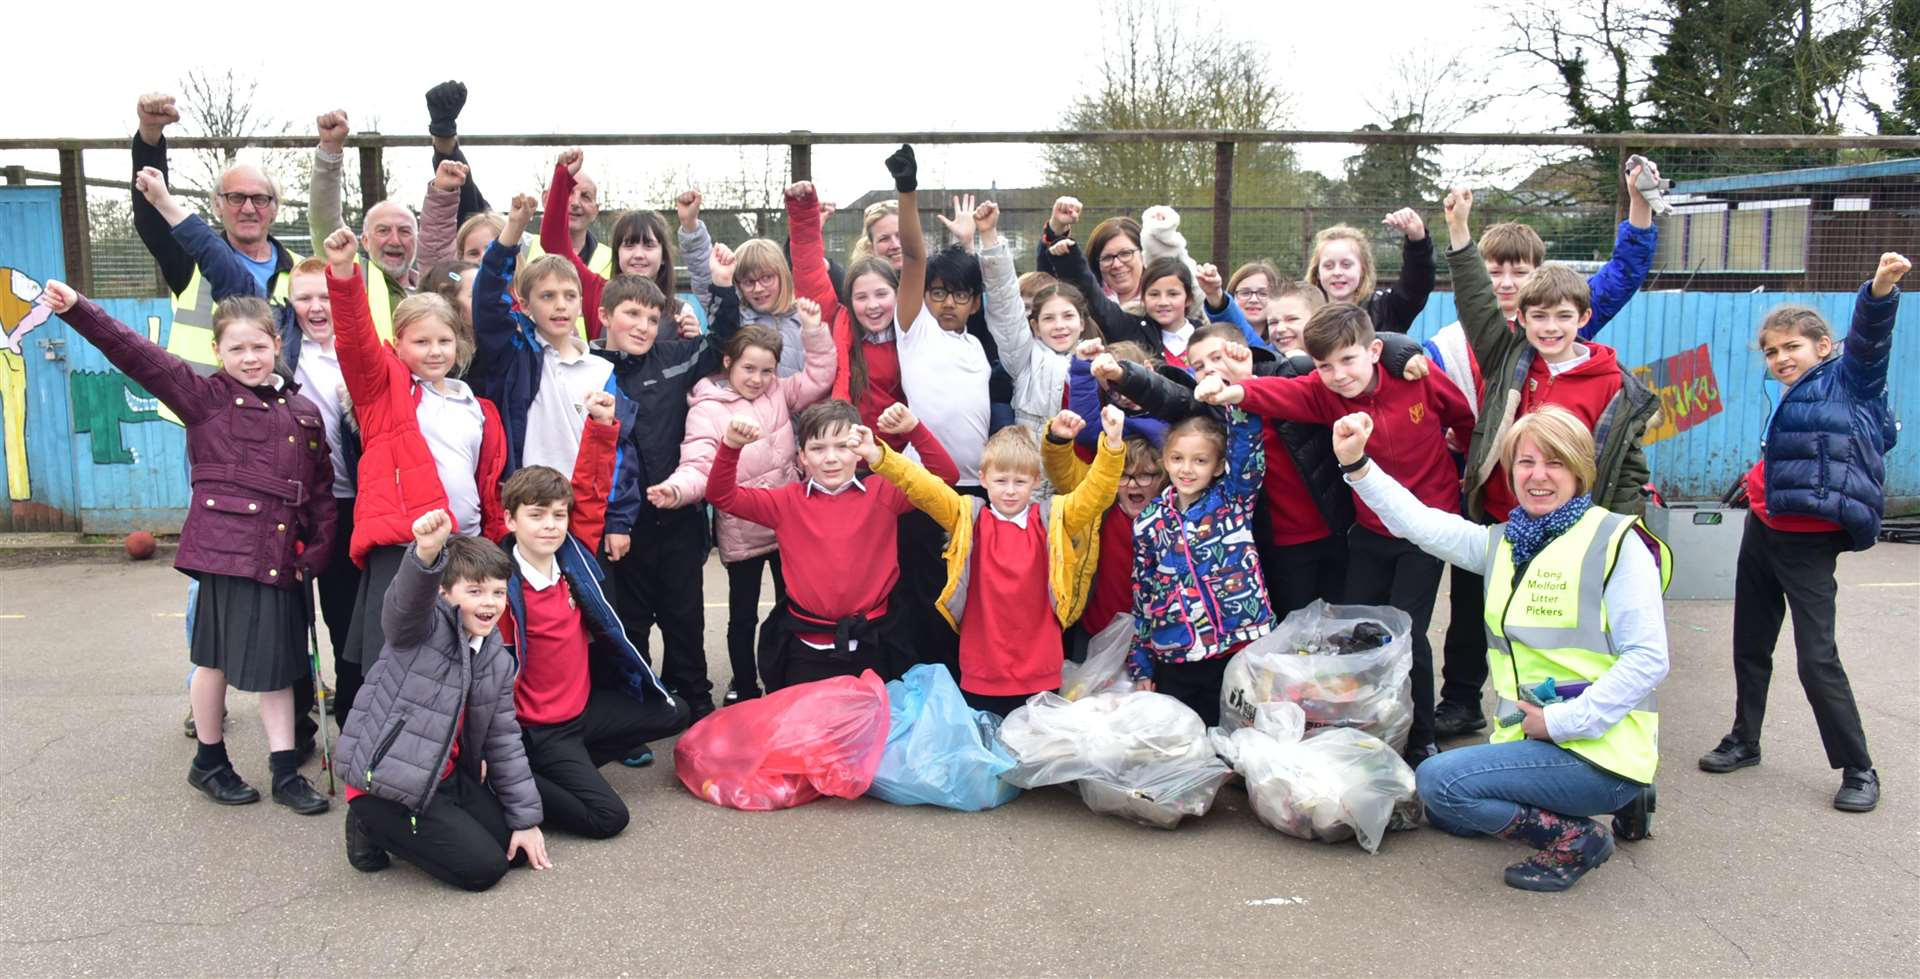 Long Melford Primary School pupils join the Long Melford Litter Pickers for the Great British Spring Clean on March 28, 2019. Photo by Steve Thomson. (8149469)